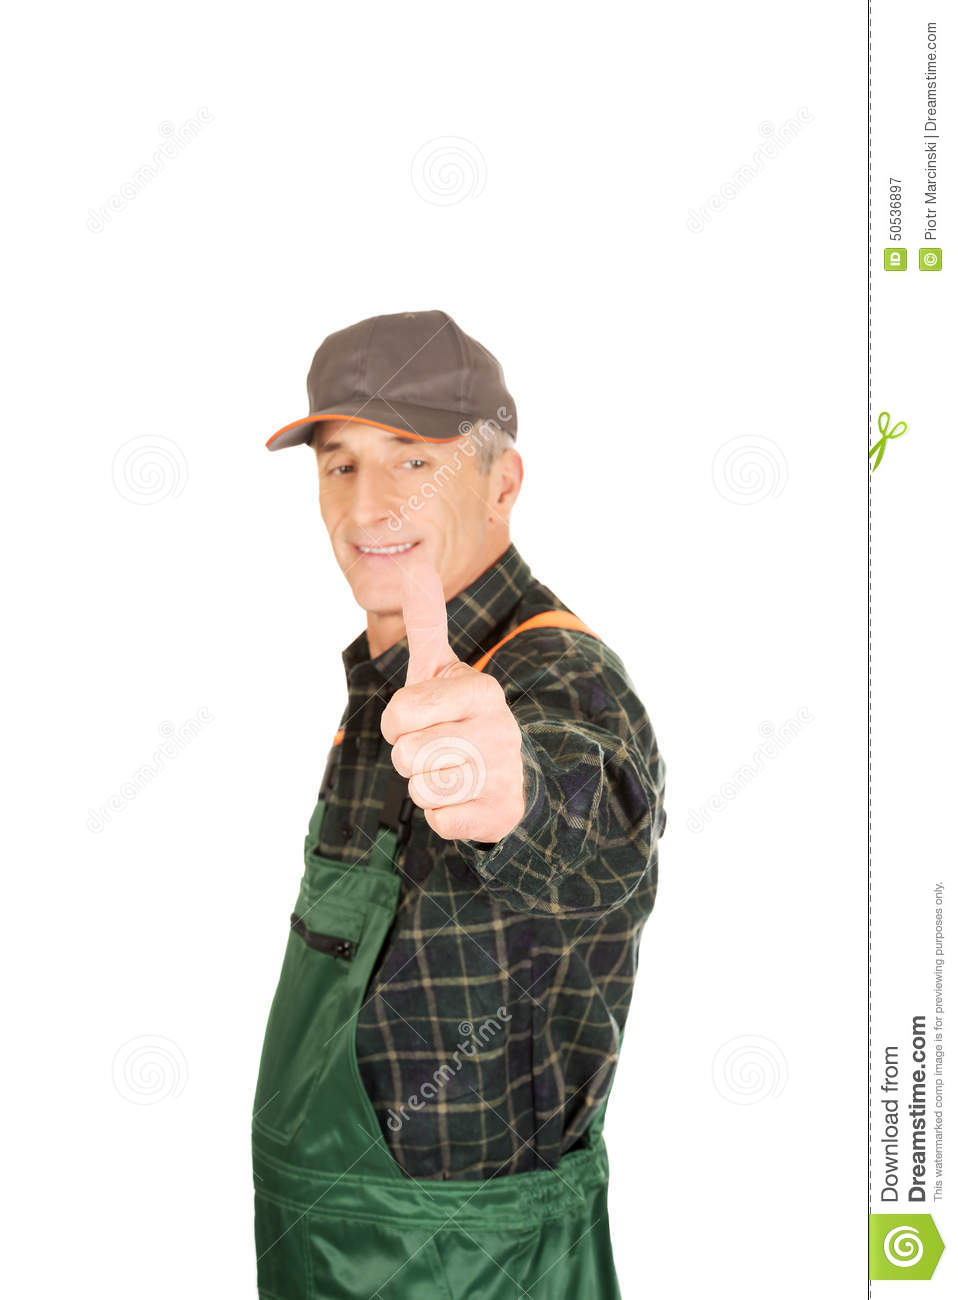 mature gardener in uniform with thumbs up stock image - image of